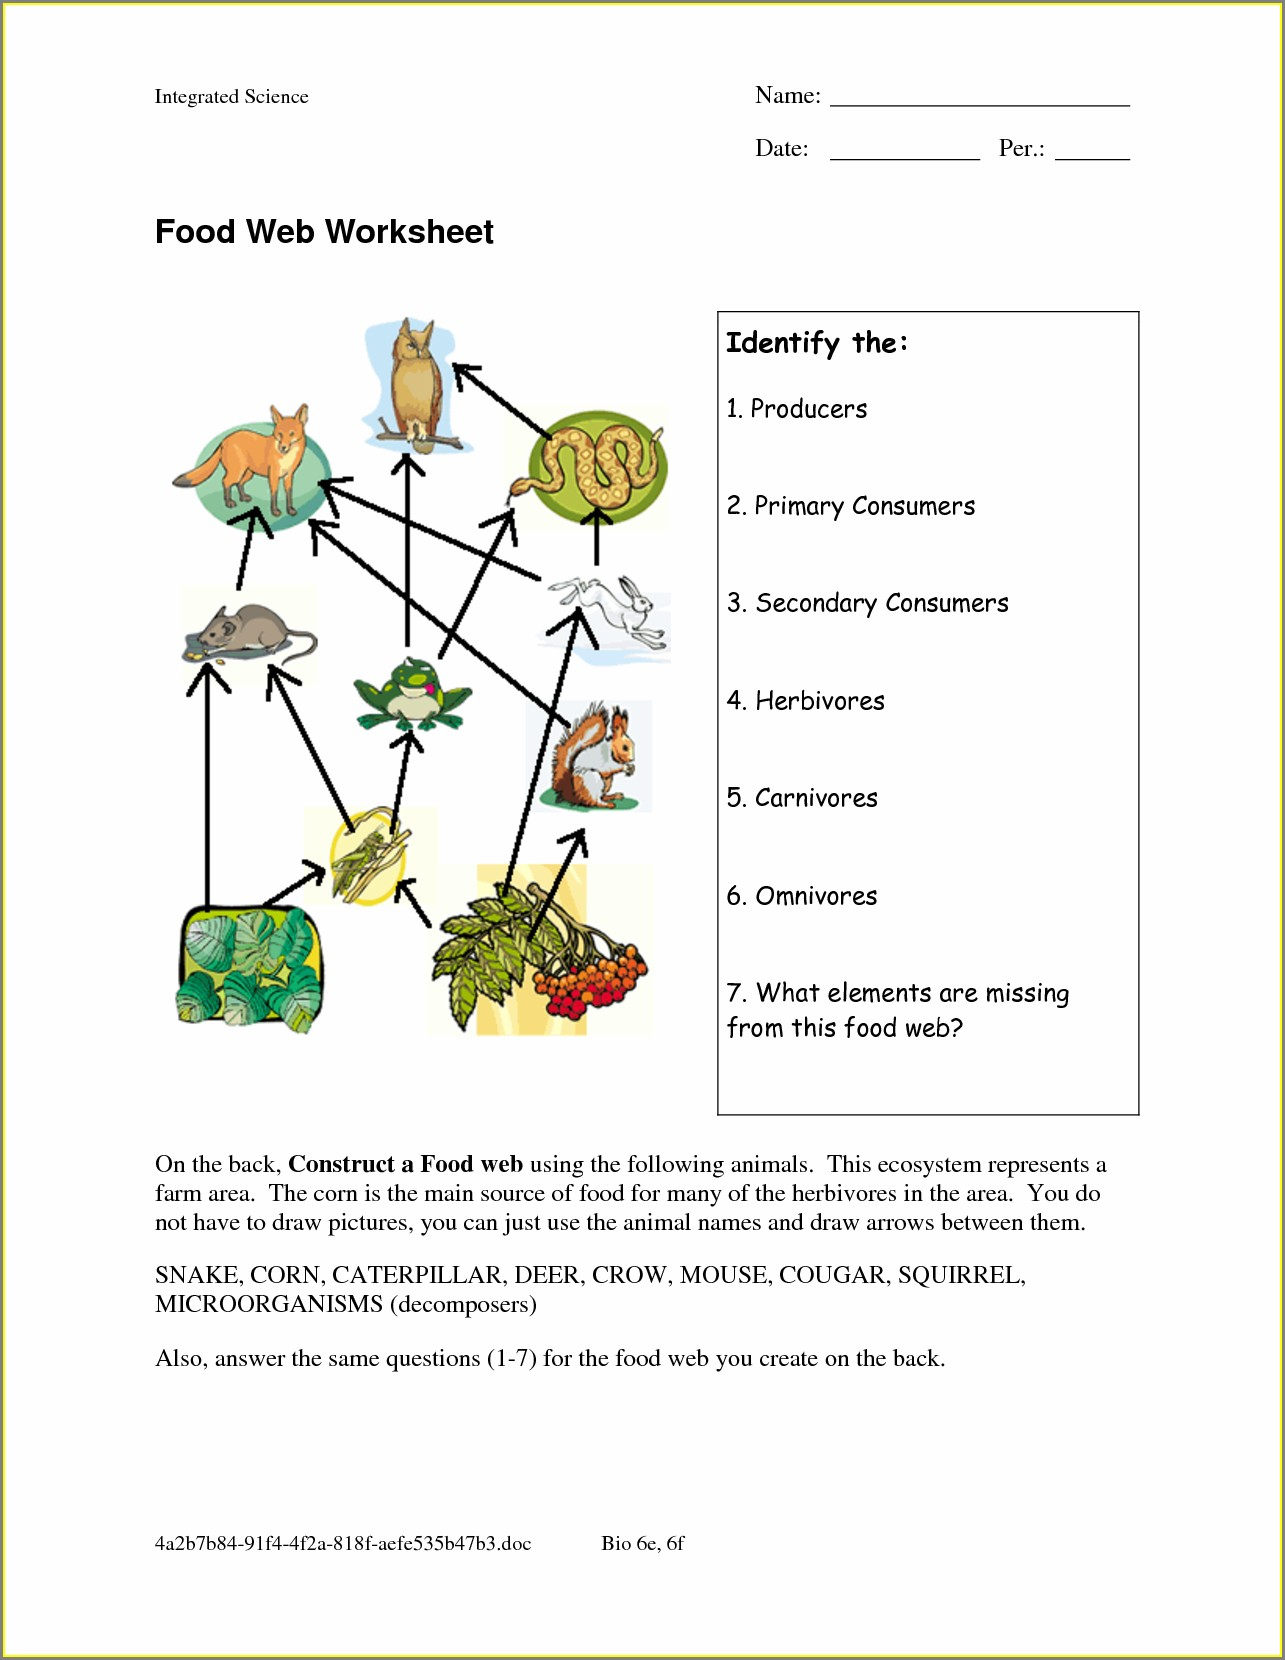 Food Web Worksheet With Answers